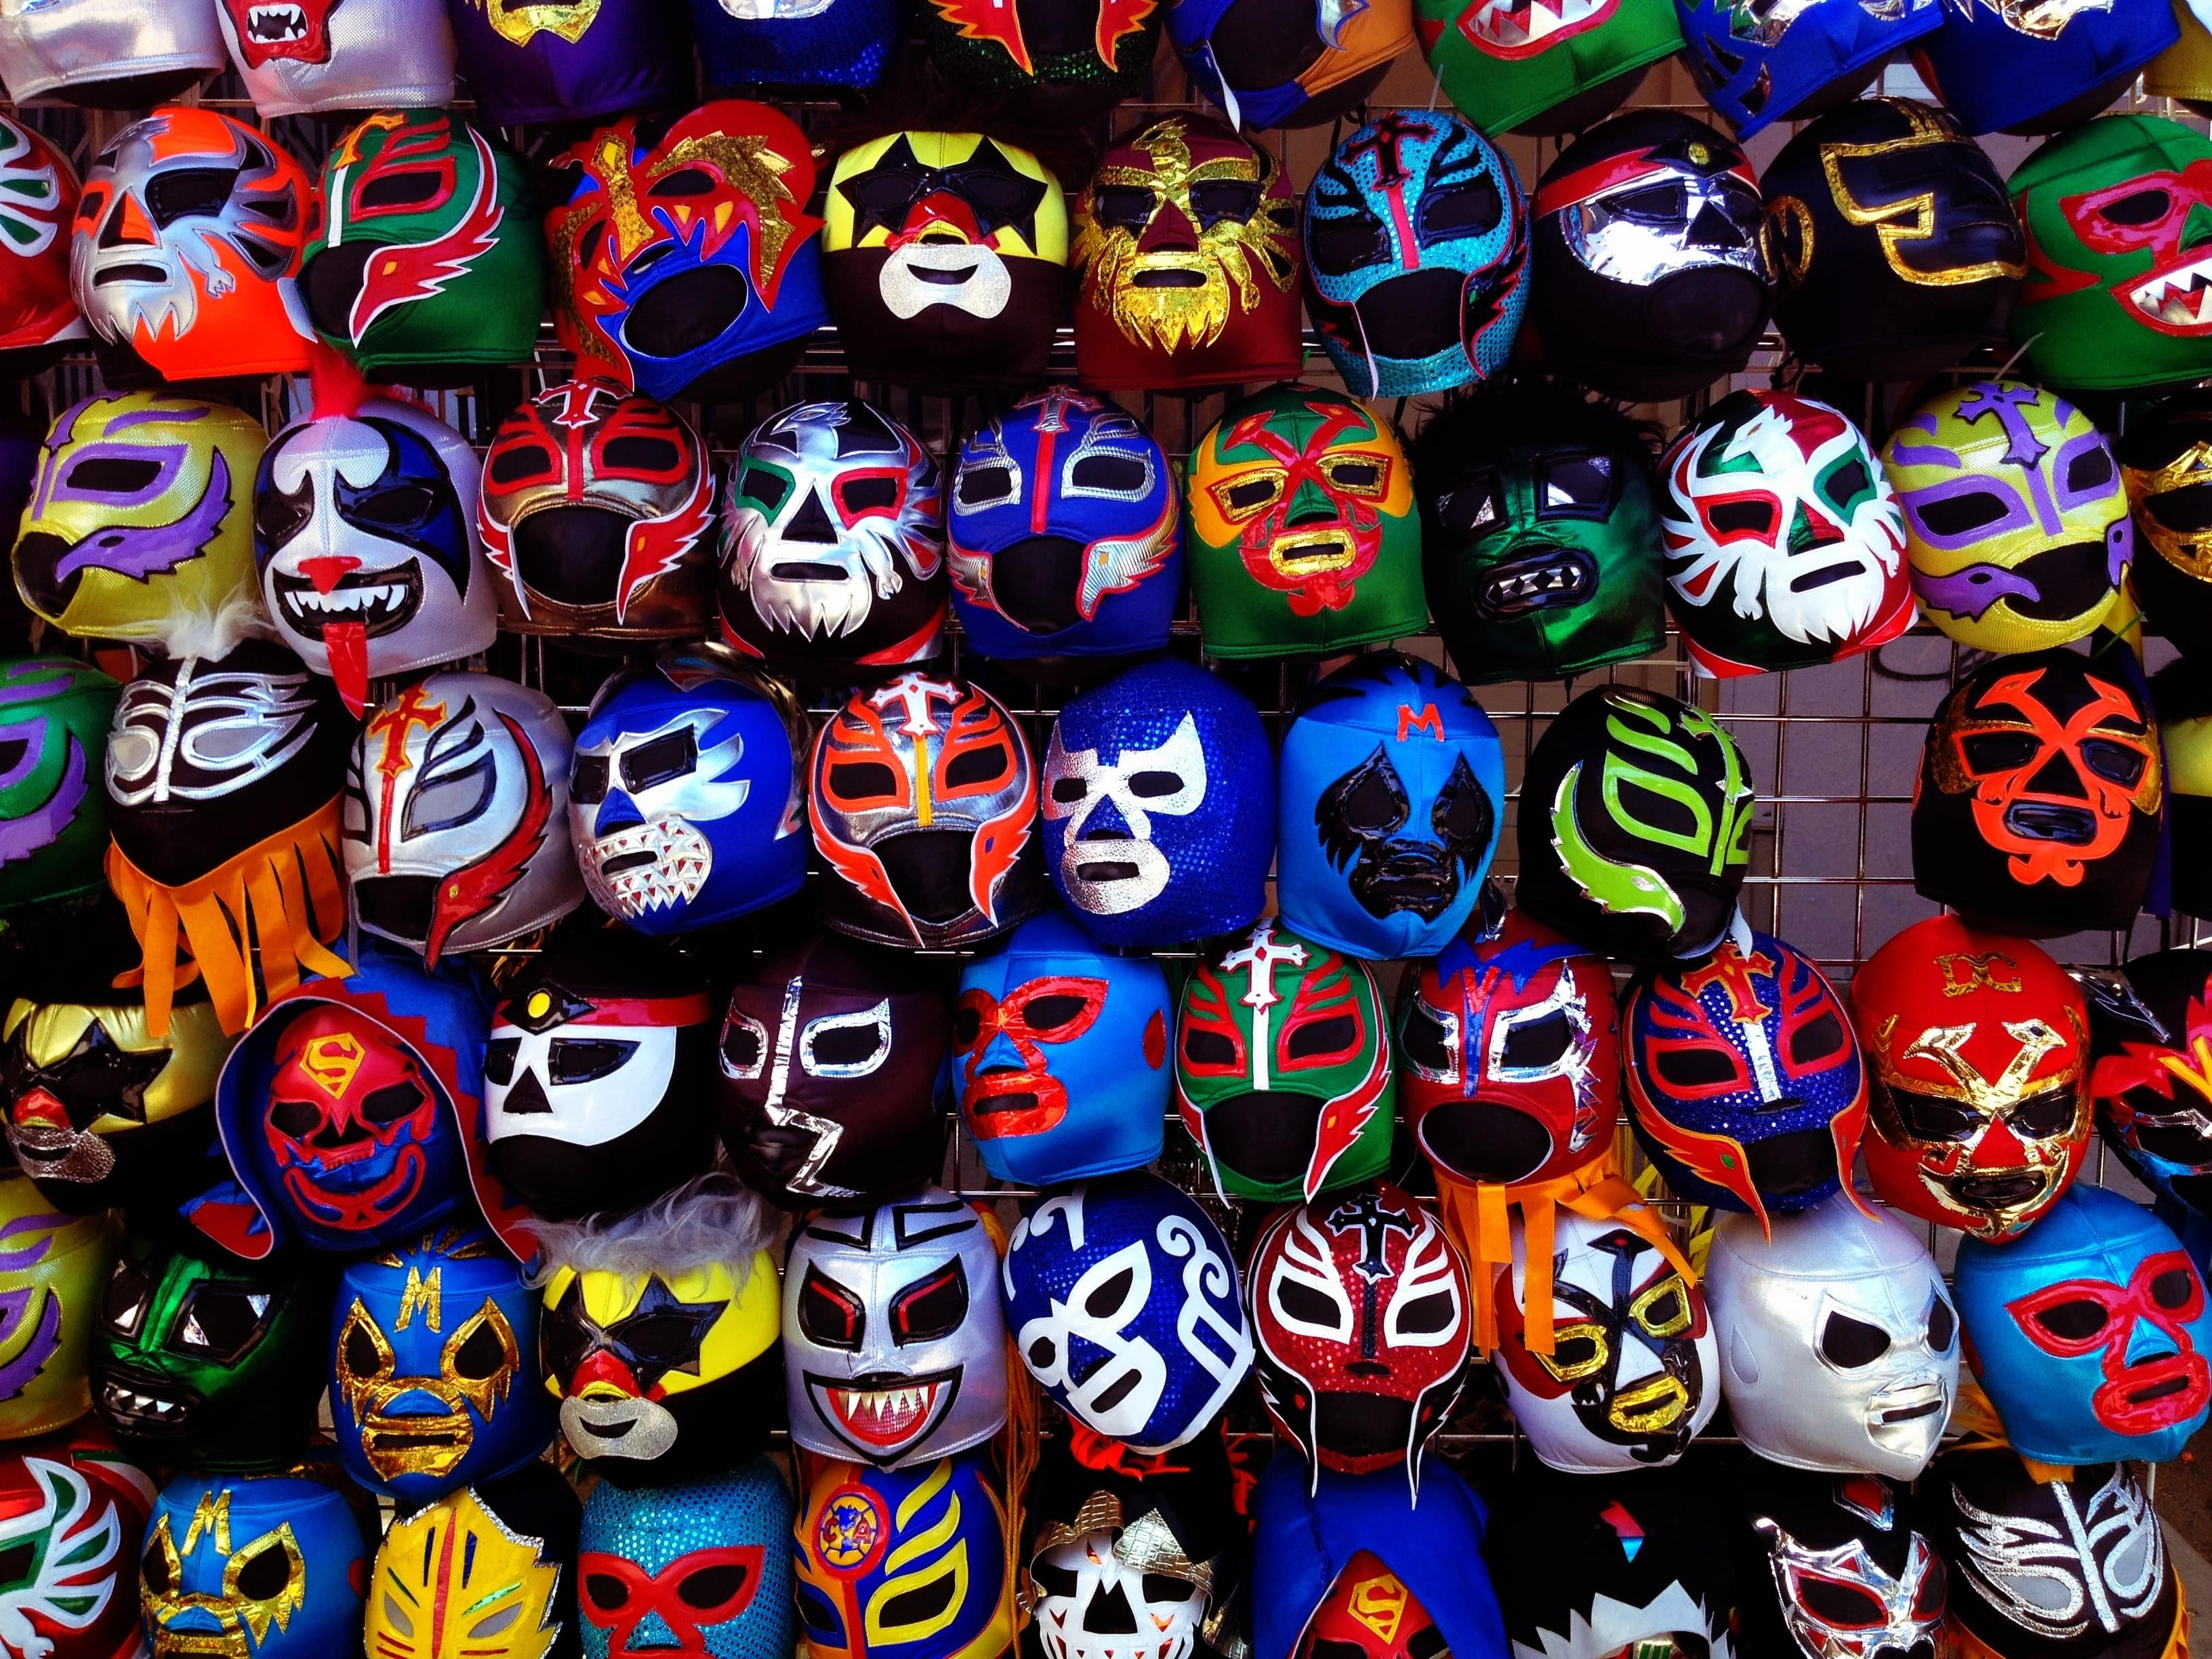 Lucha Libre Mexico Where To Watch Mexican Wrestling In Mexico City